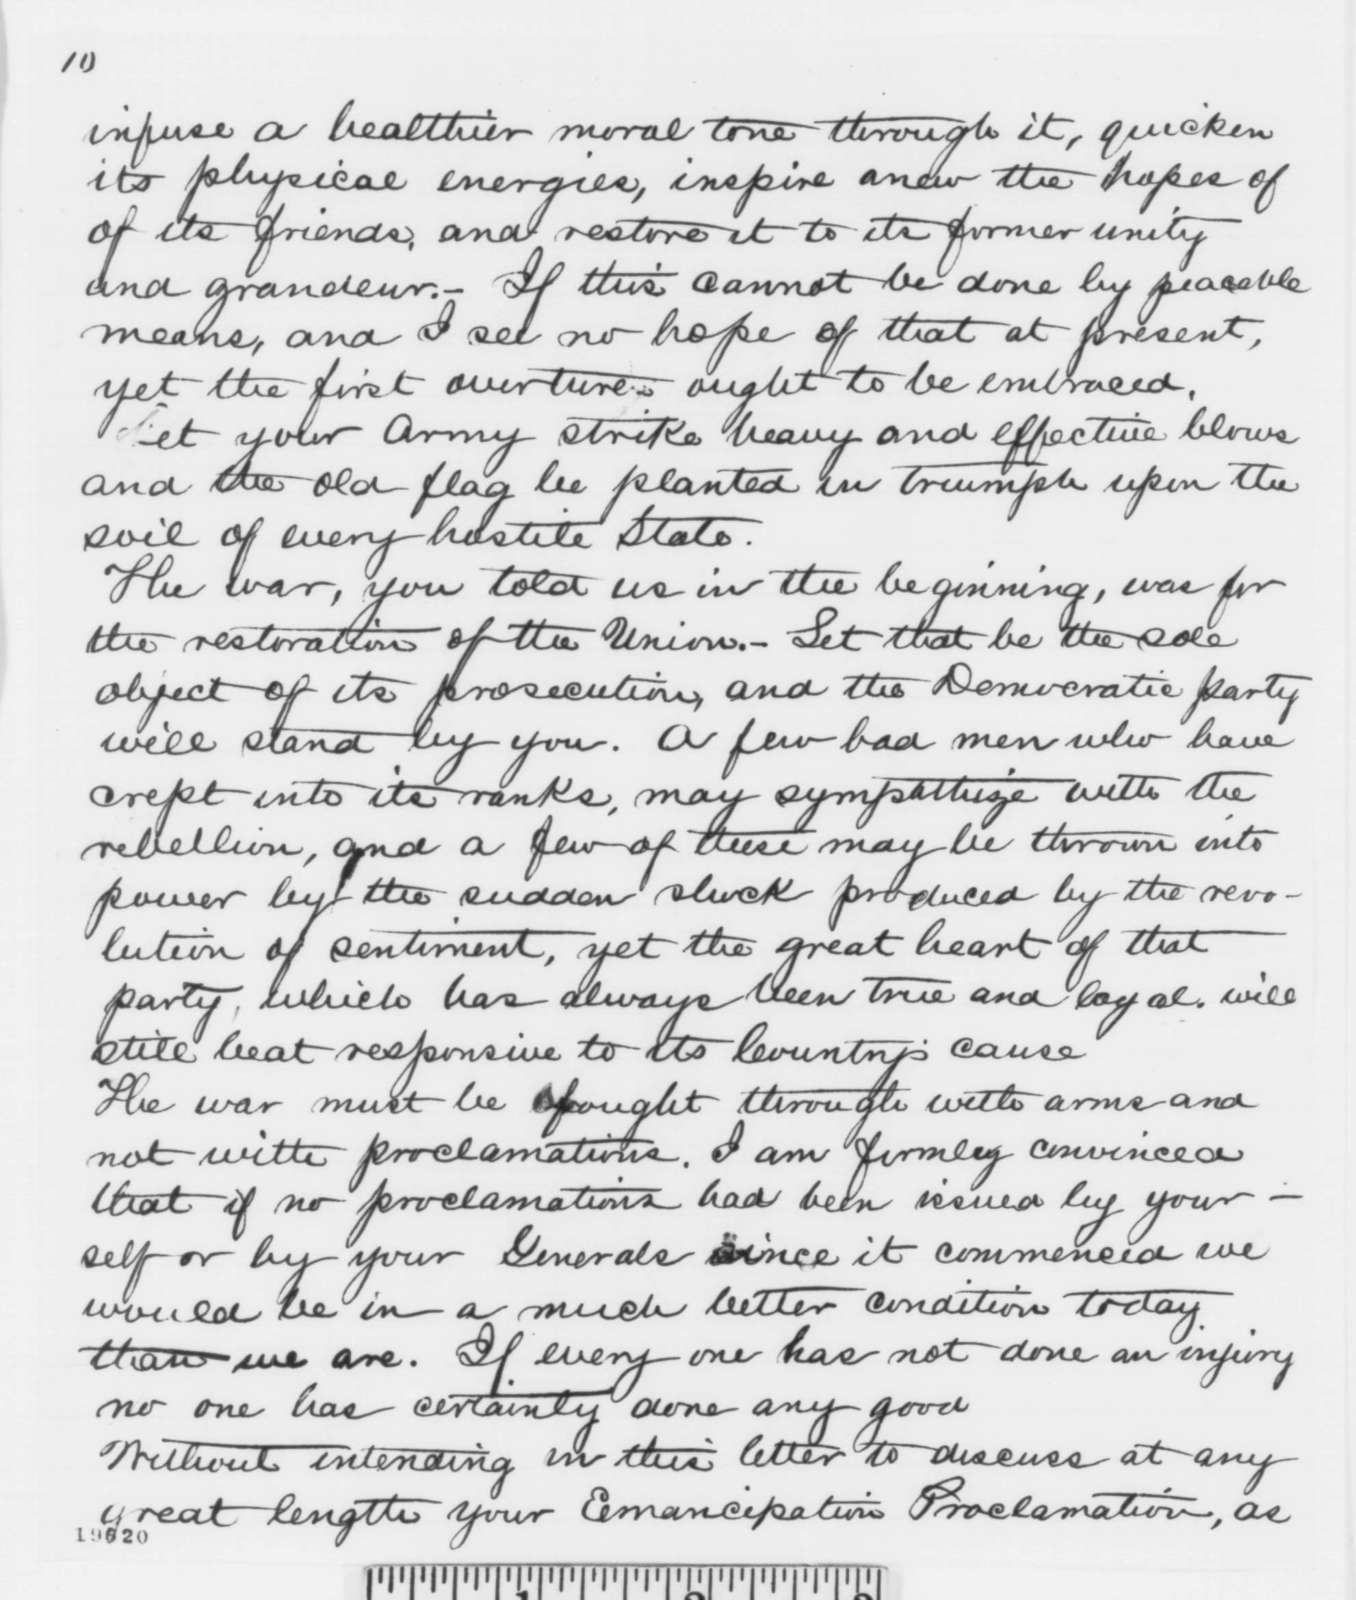 Isaac N. Morris to Abraham Lincoln, Thursday, November 20, 1862  (Thoughts on political and military affairs)